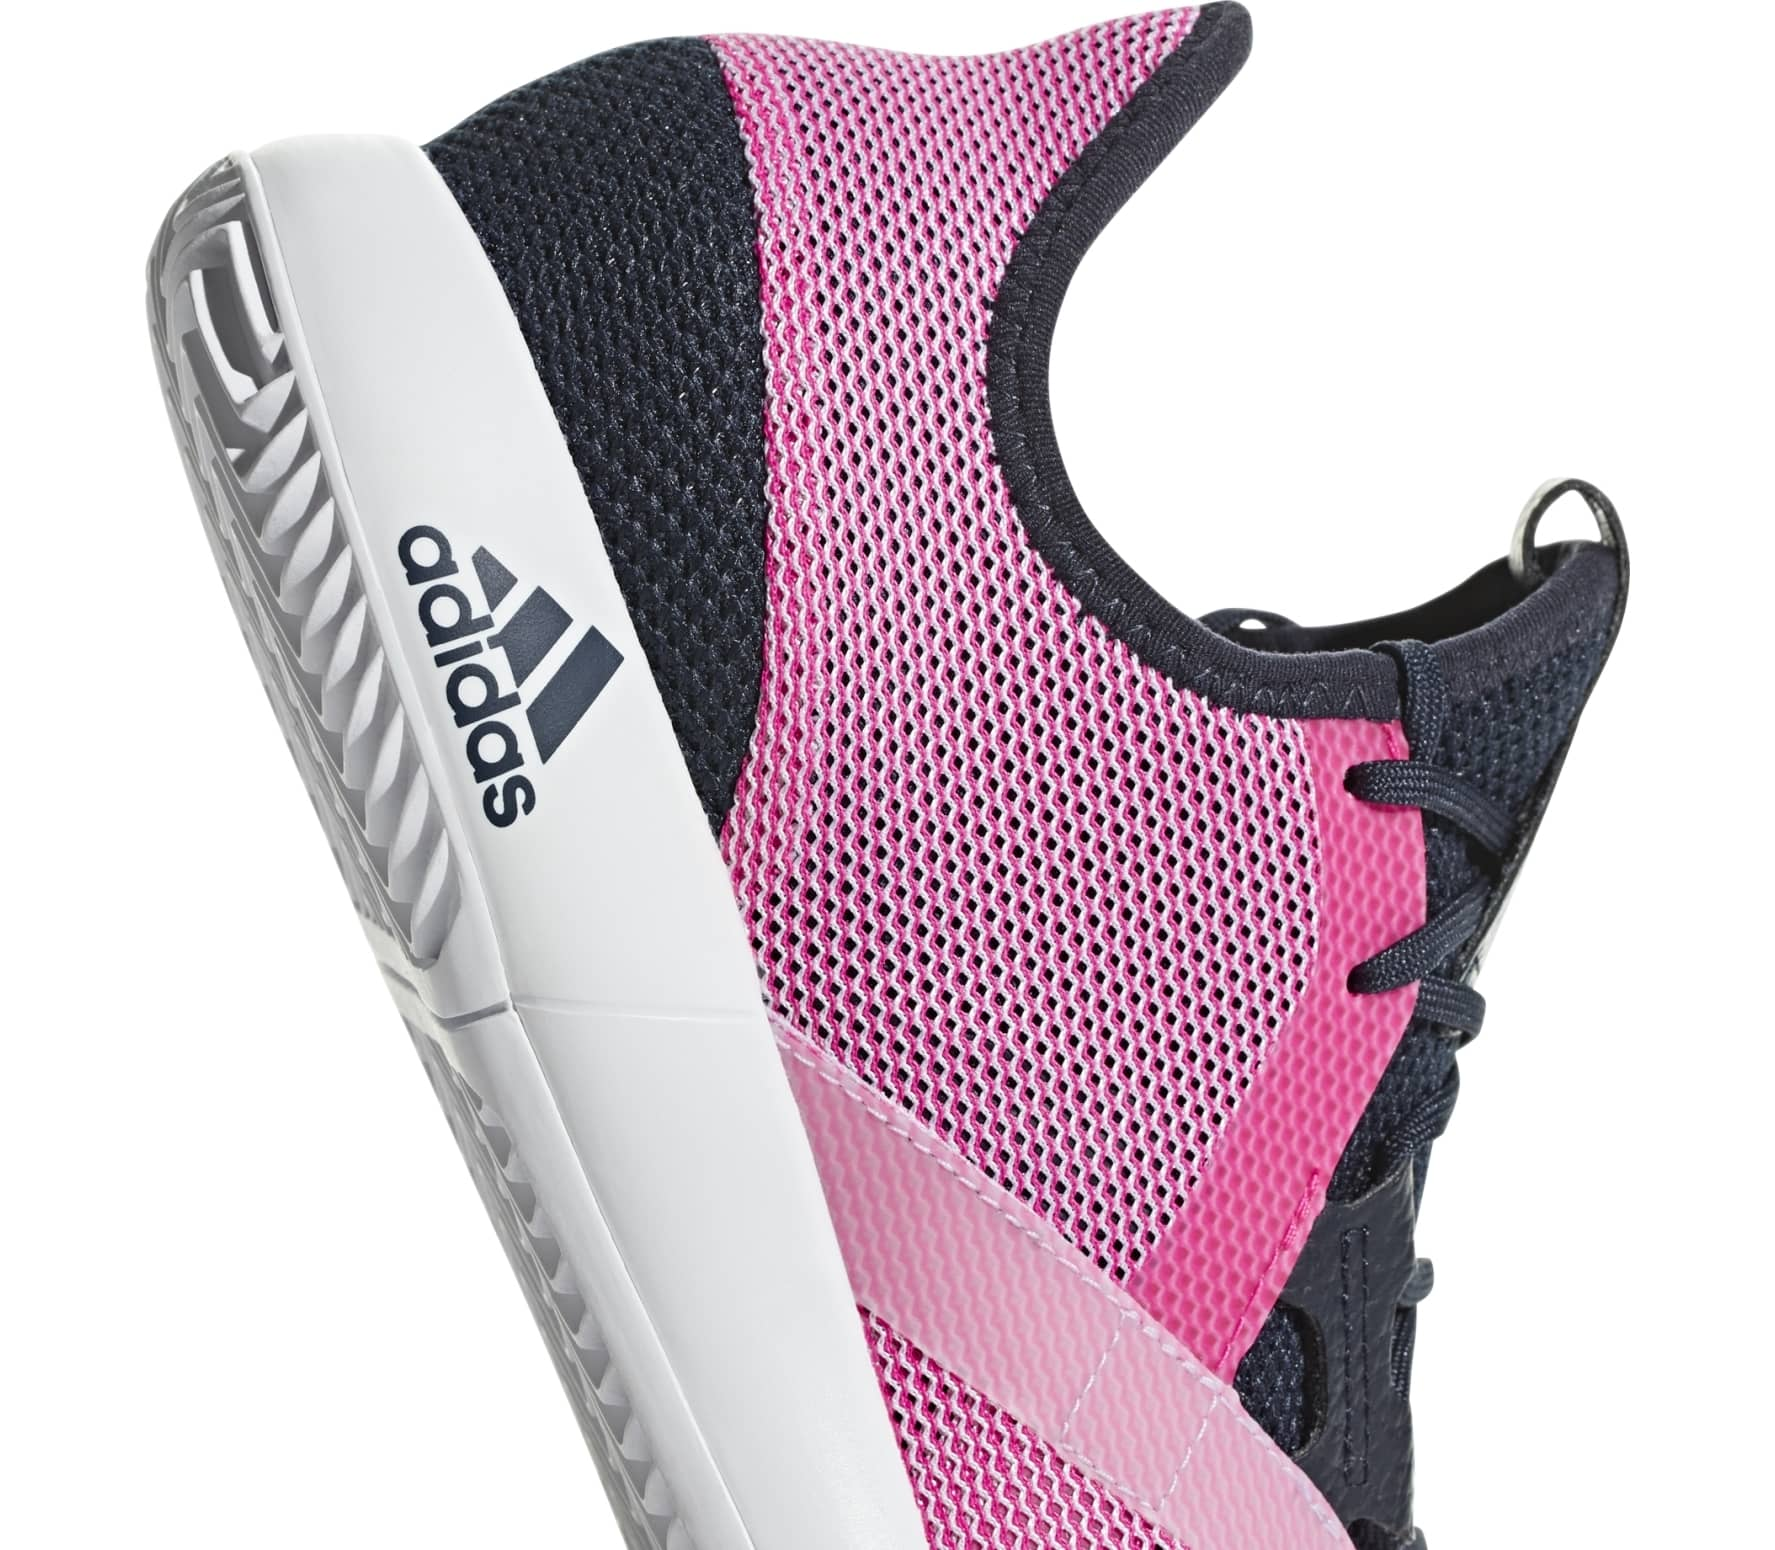 premium selection 7e74c dc079 adidas performance - Adizero Defiant Bounce womens tennis shoes (pink)